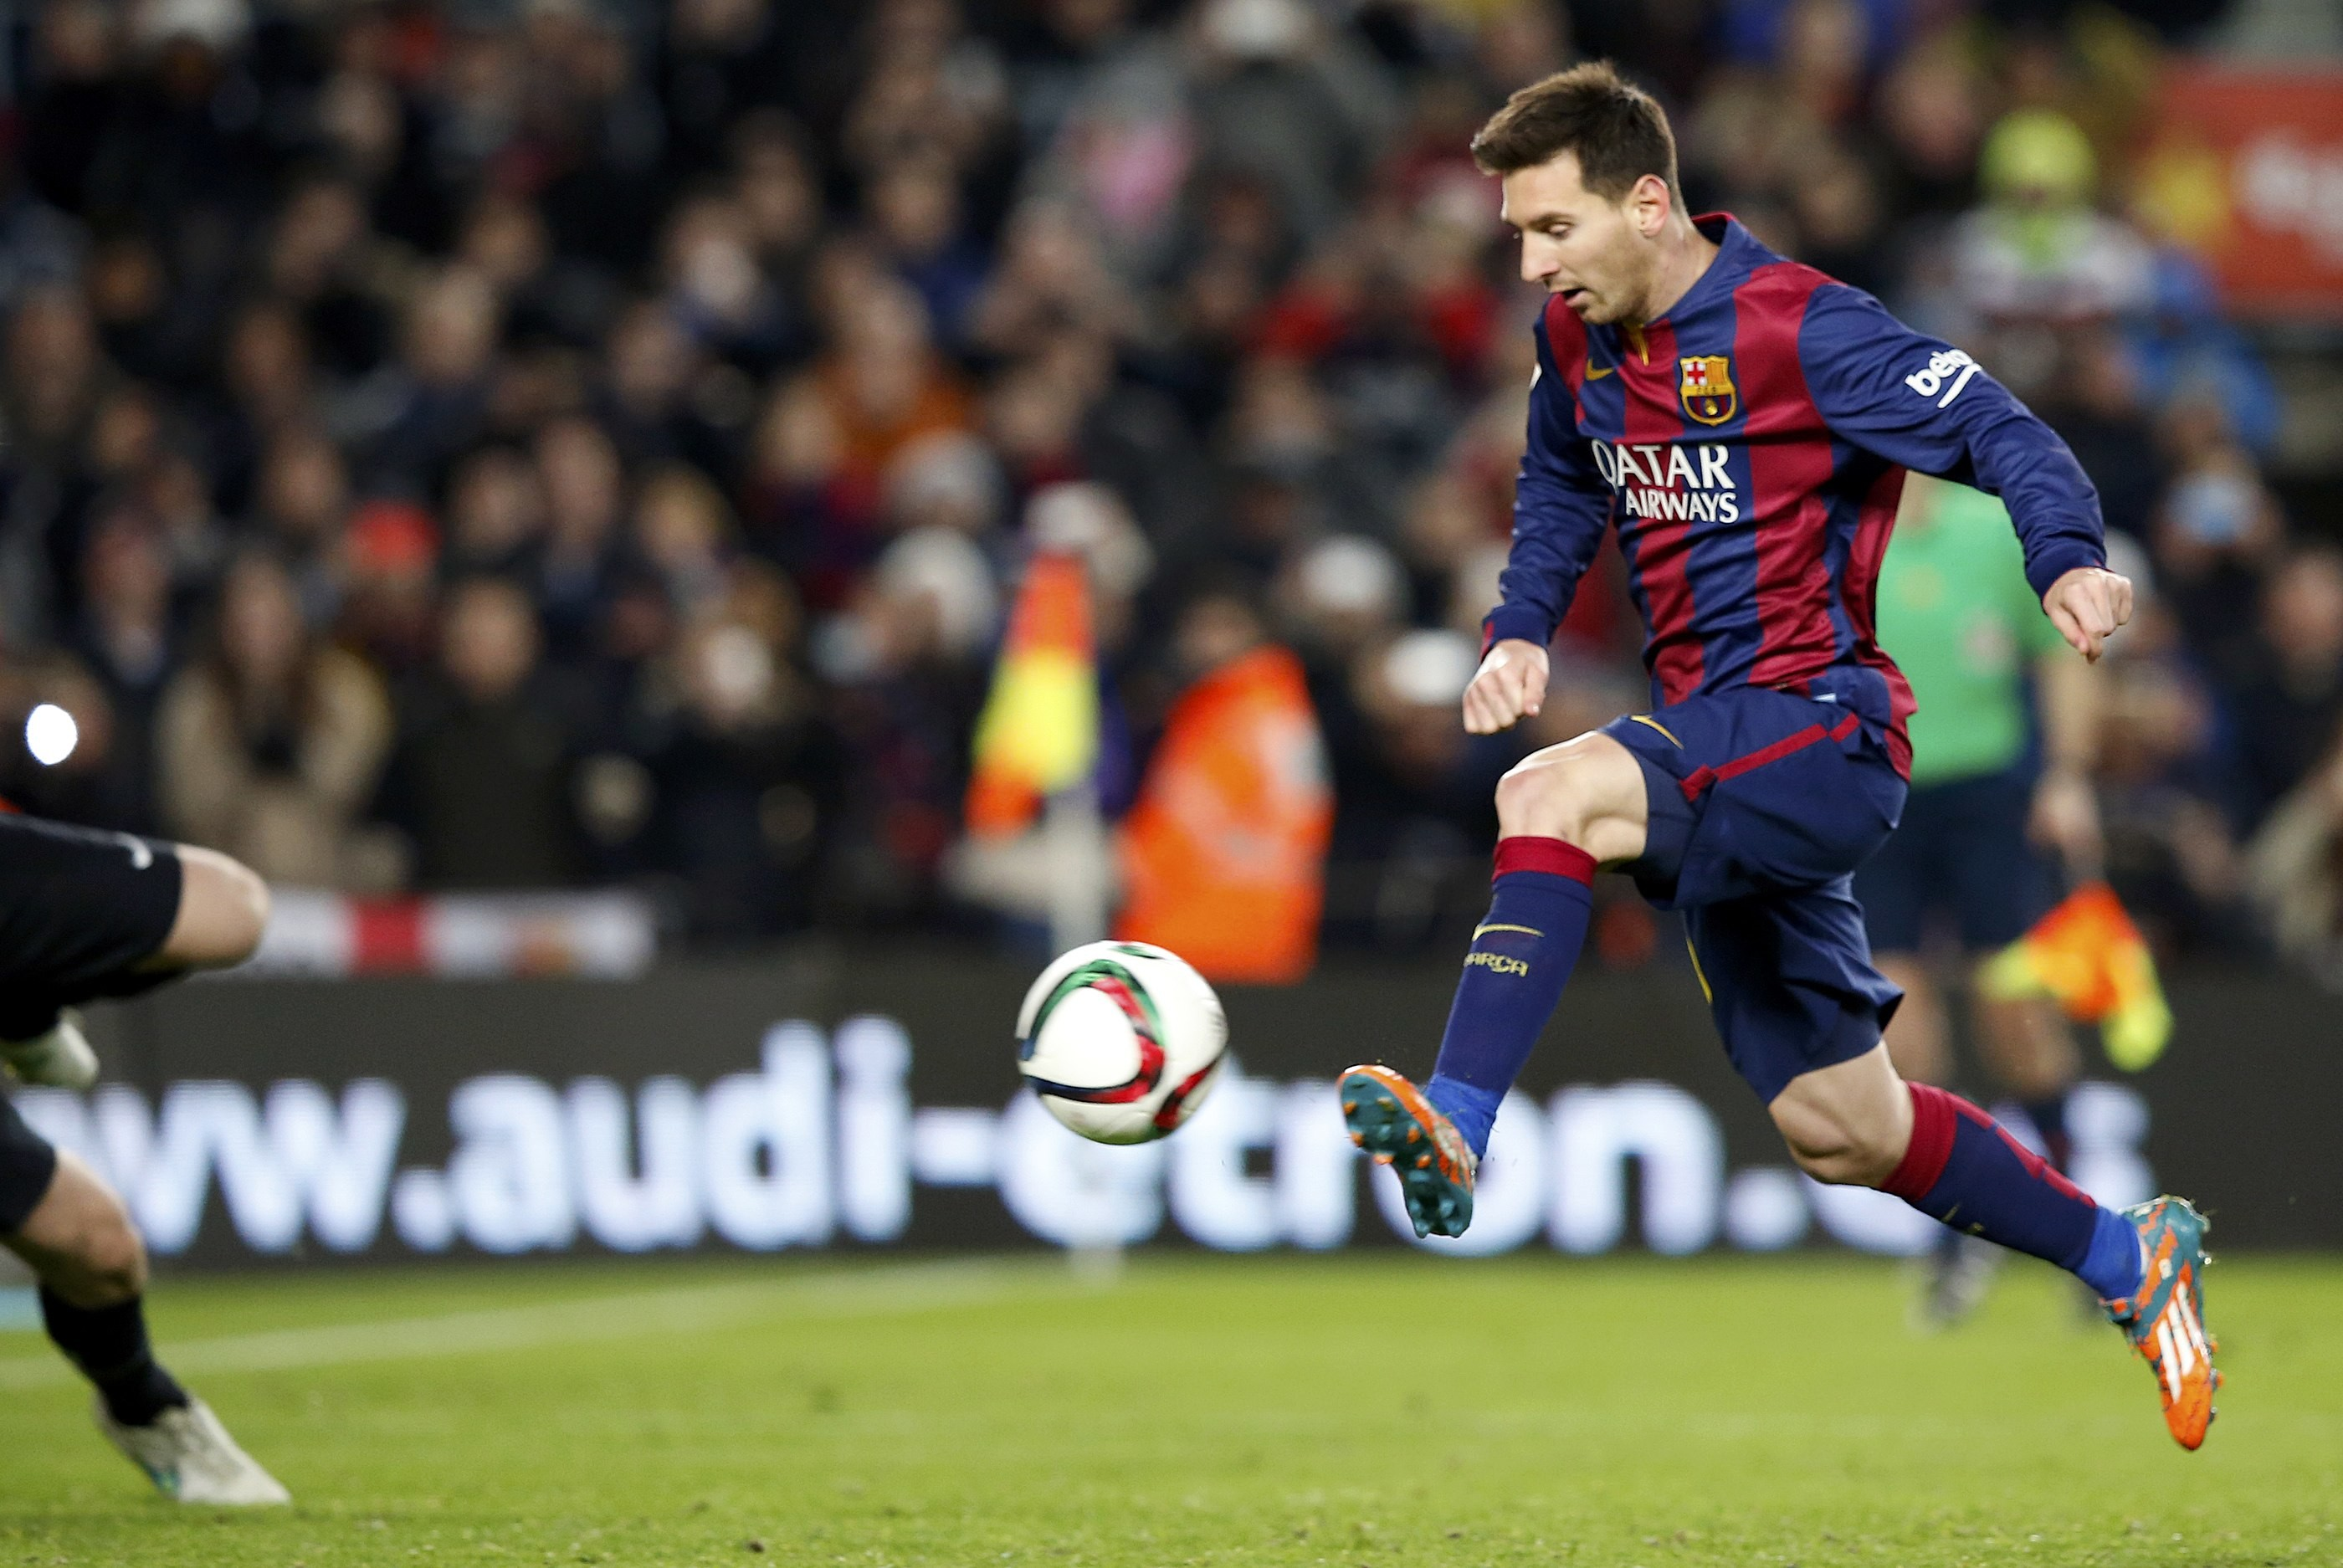 Lionel Messi 2018 Wallpapers 80 images 2800x1874